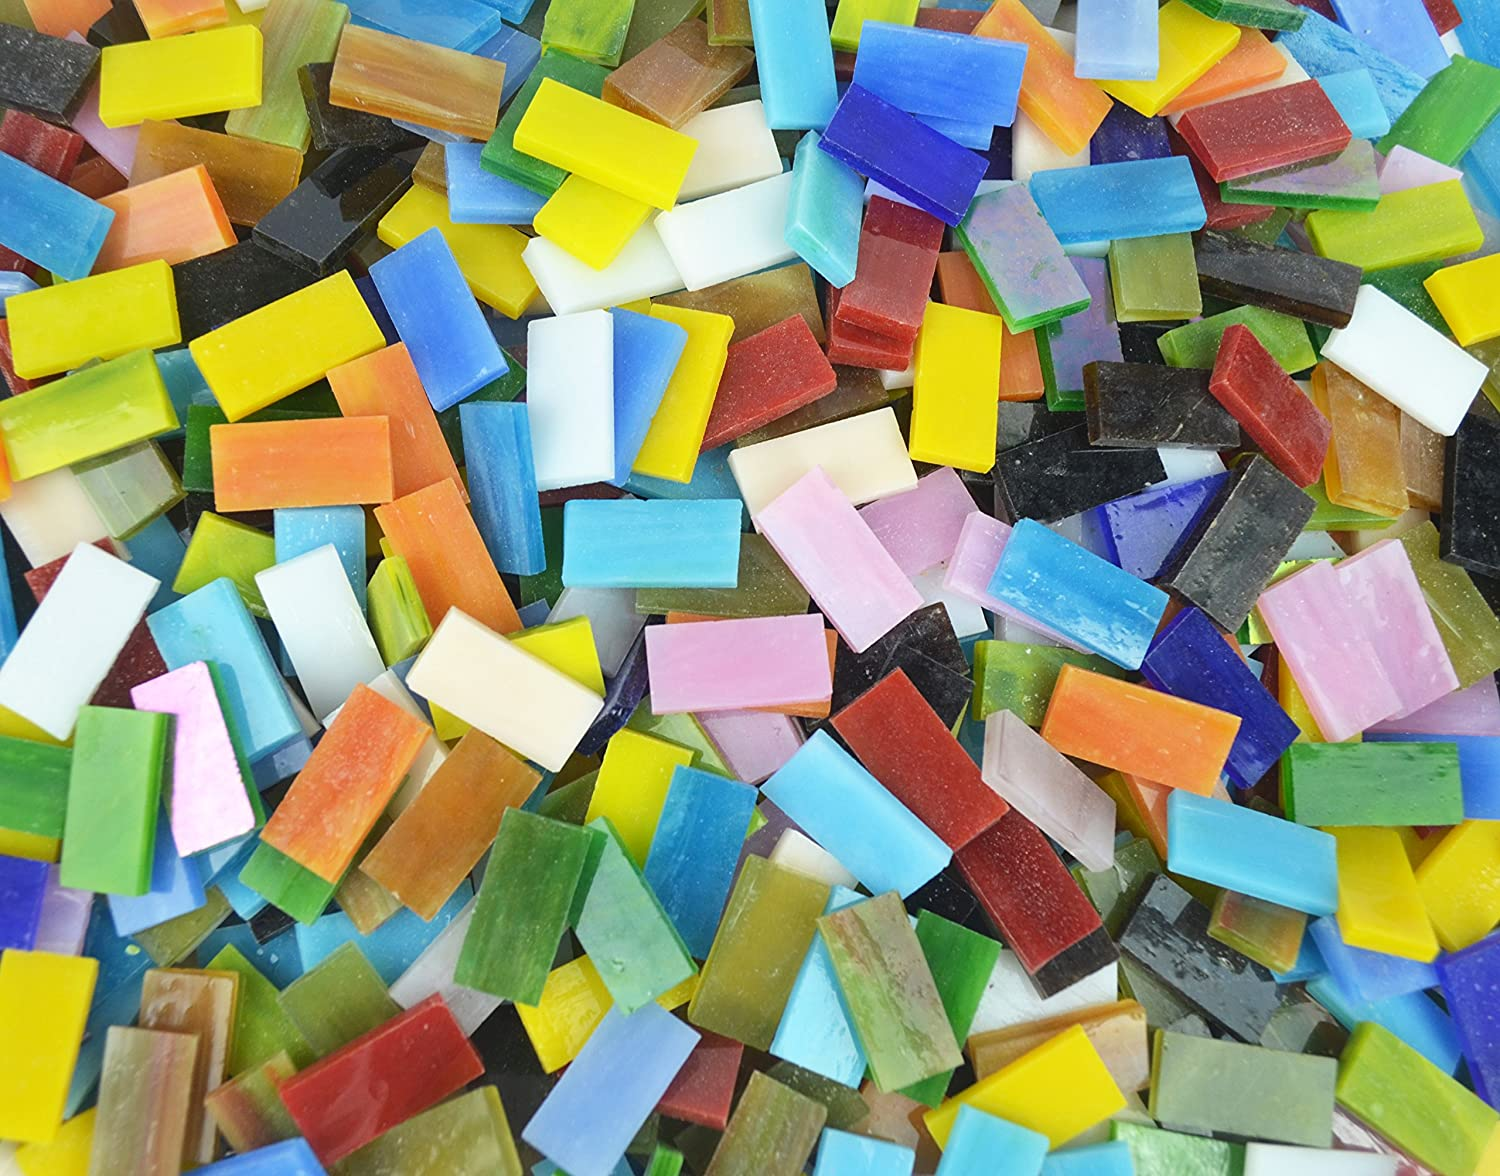 Lanyani 400 Pieces/17.6oz Rectangle Mosaic Tiles Stained Glass For Crafts and Home Decorations Assorted Colors Textures